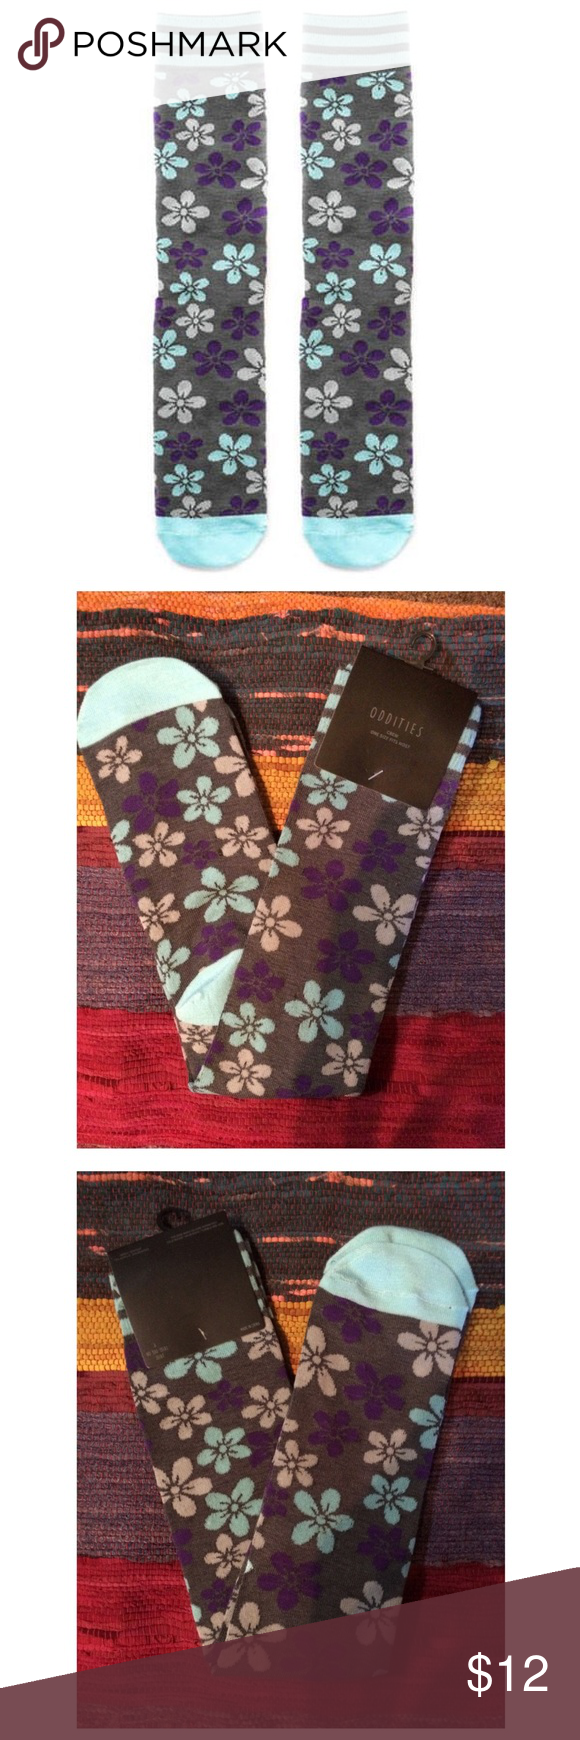 Floral Design Knee High Socks Knee high length with an all-over floral print. Has bright, enriched colors like purple and light blue. Size: OSFM. Brand new on garment tag, NWT!! Other